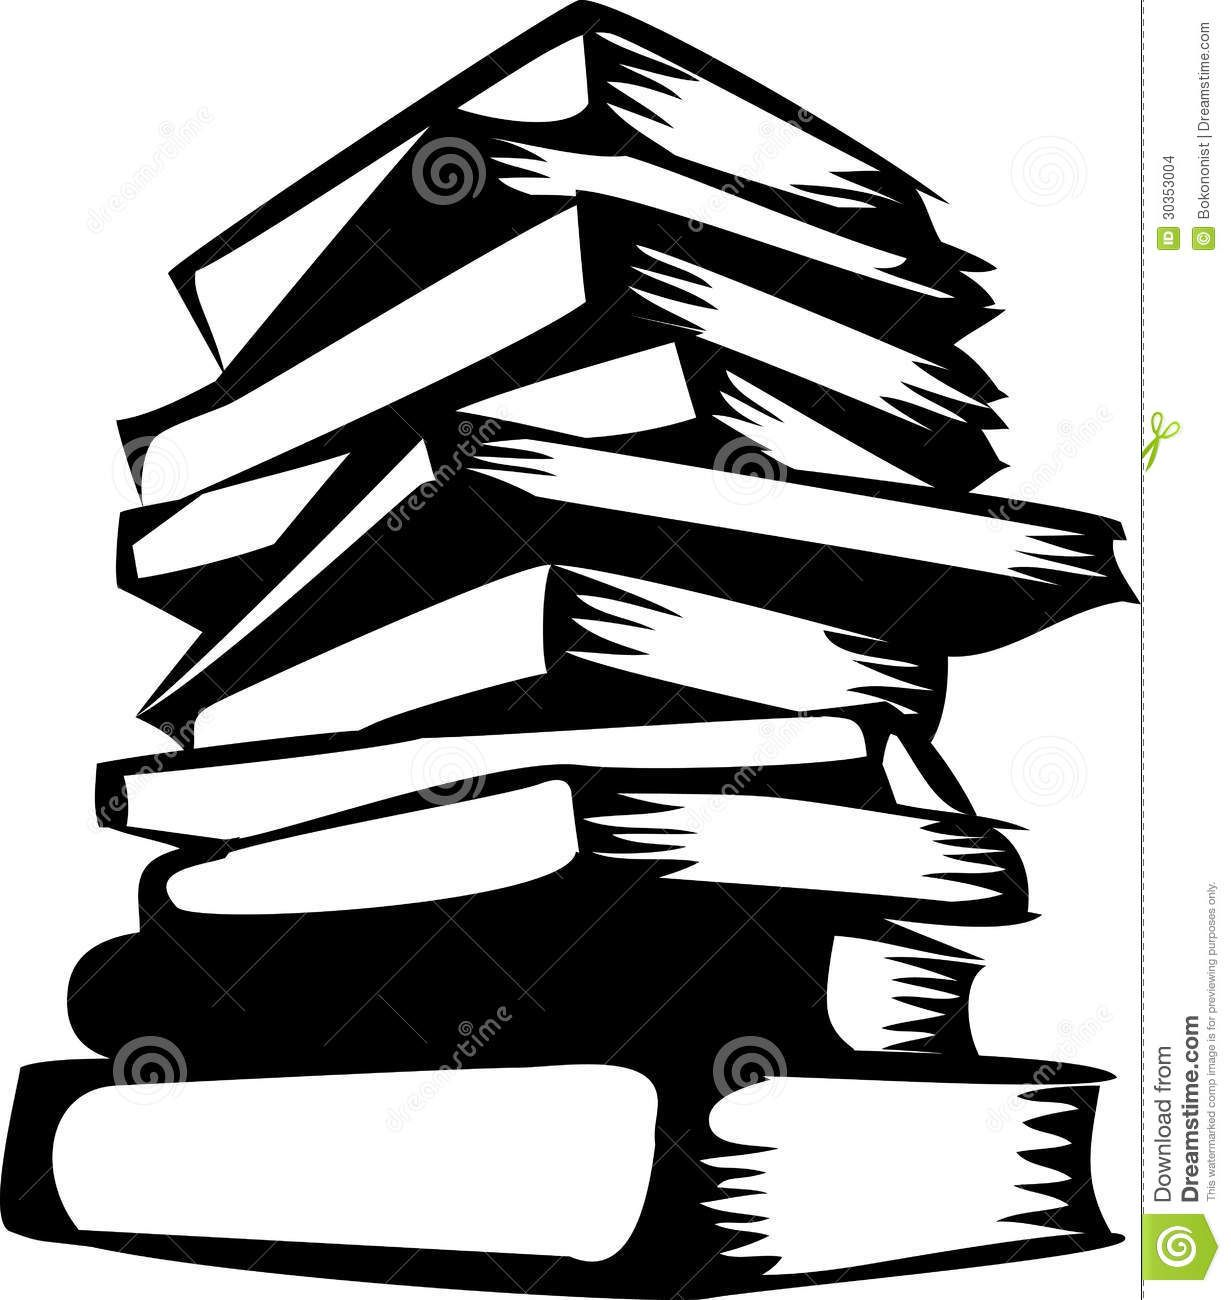 medium resolution of stacked books silhouette use these free images for your websites art projects reports and